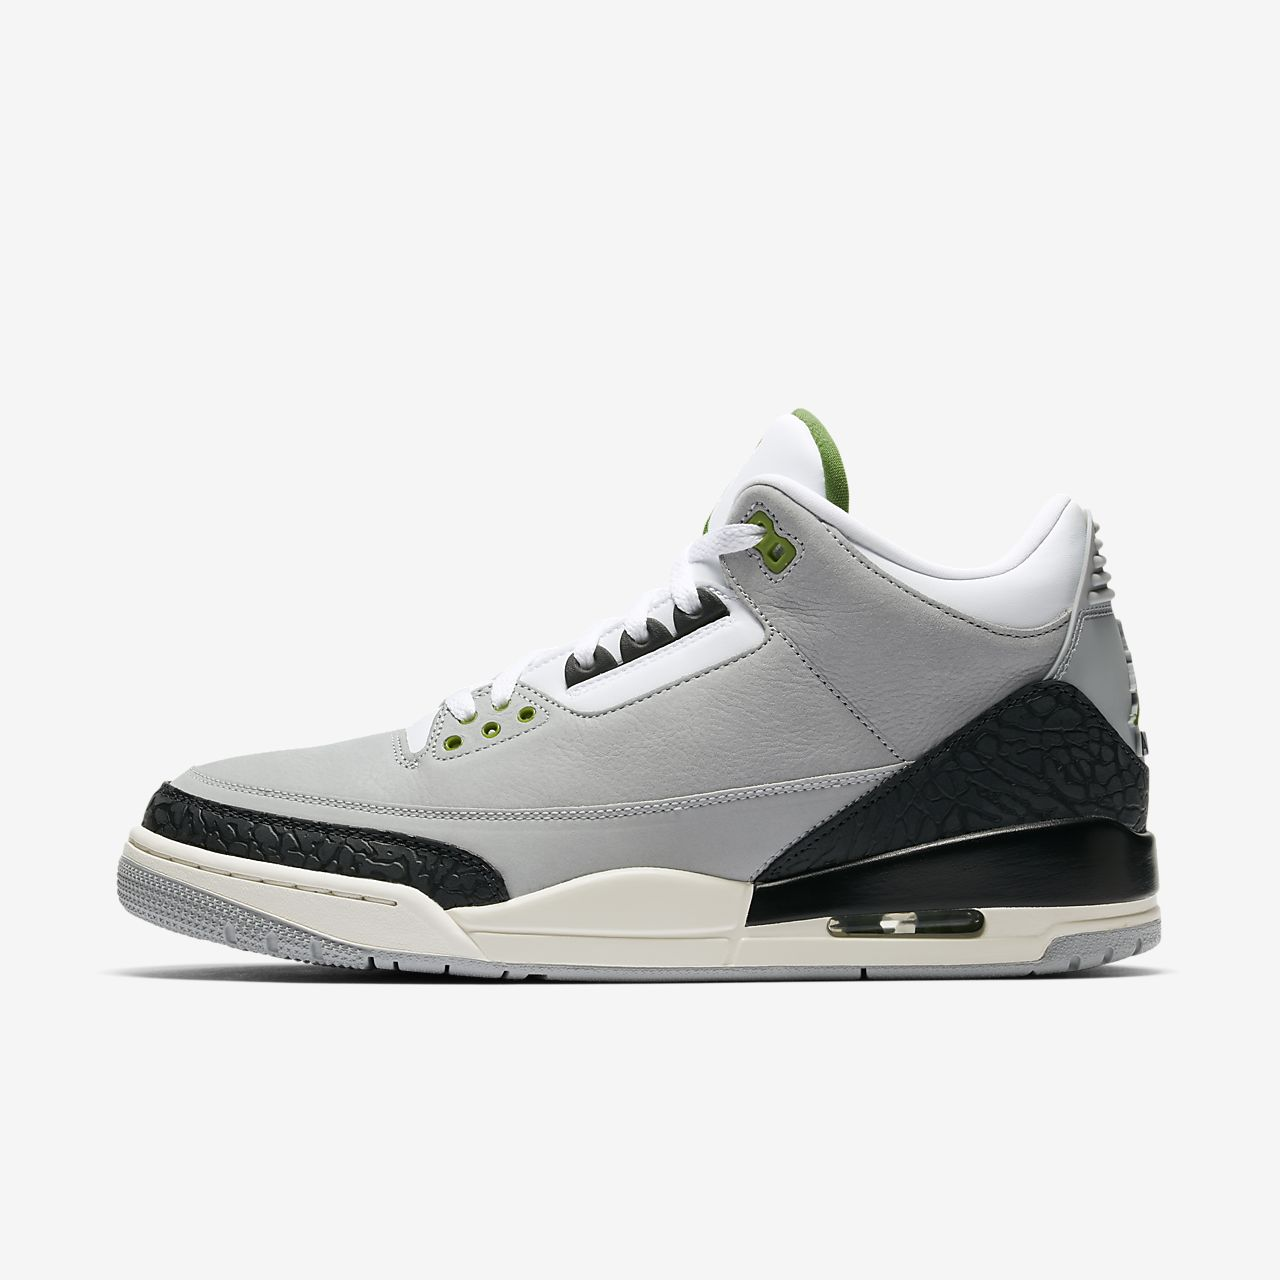 88aec7fb1a20b coupon code air jordan retro 3 mujeres blanco amarillo 6a6f6 e0823